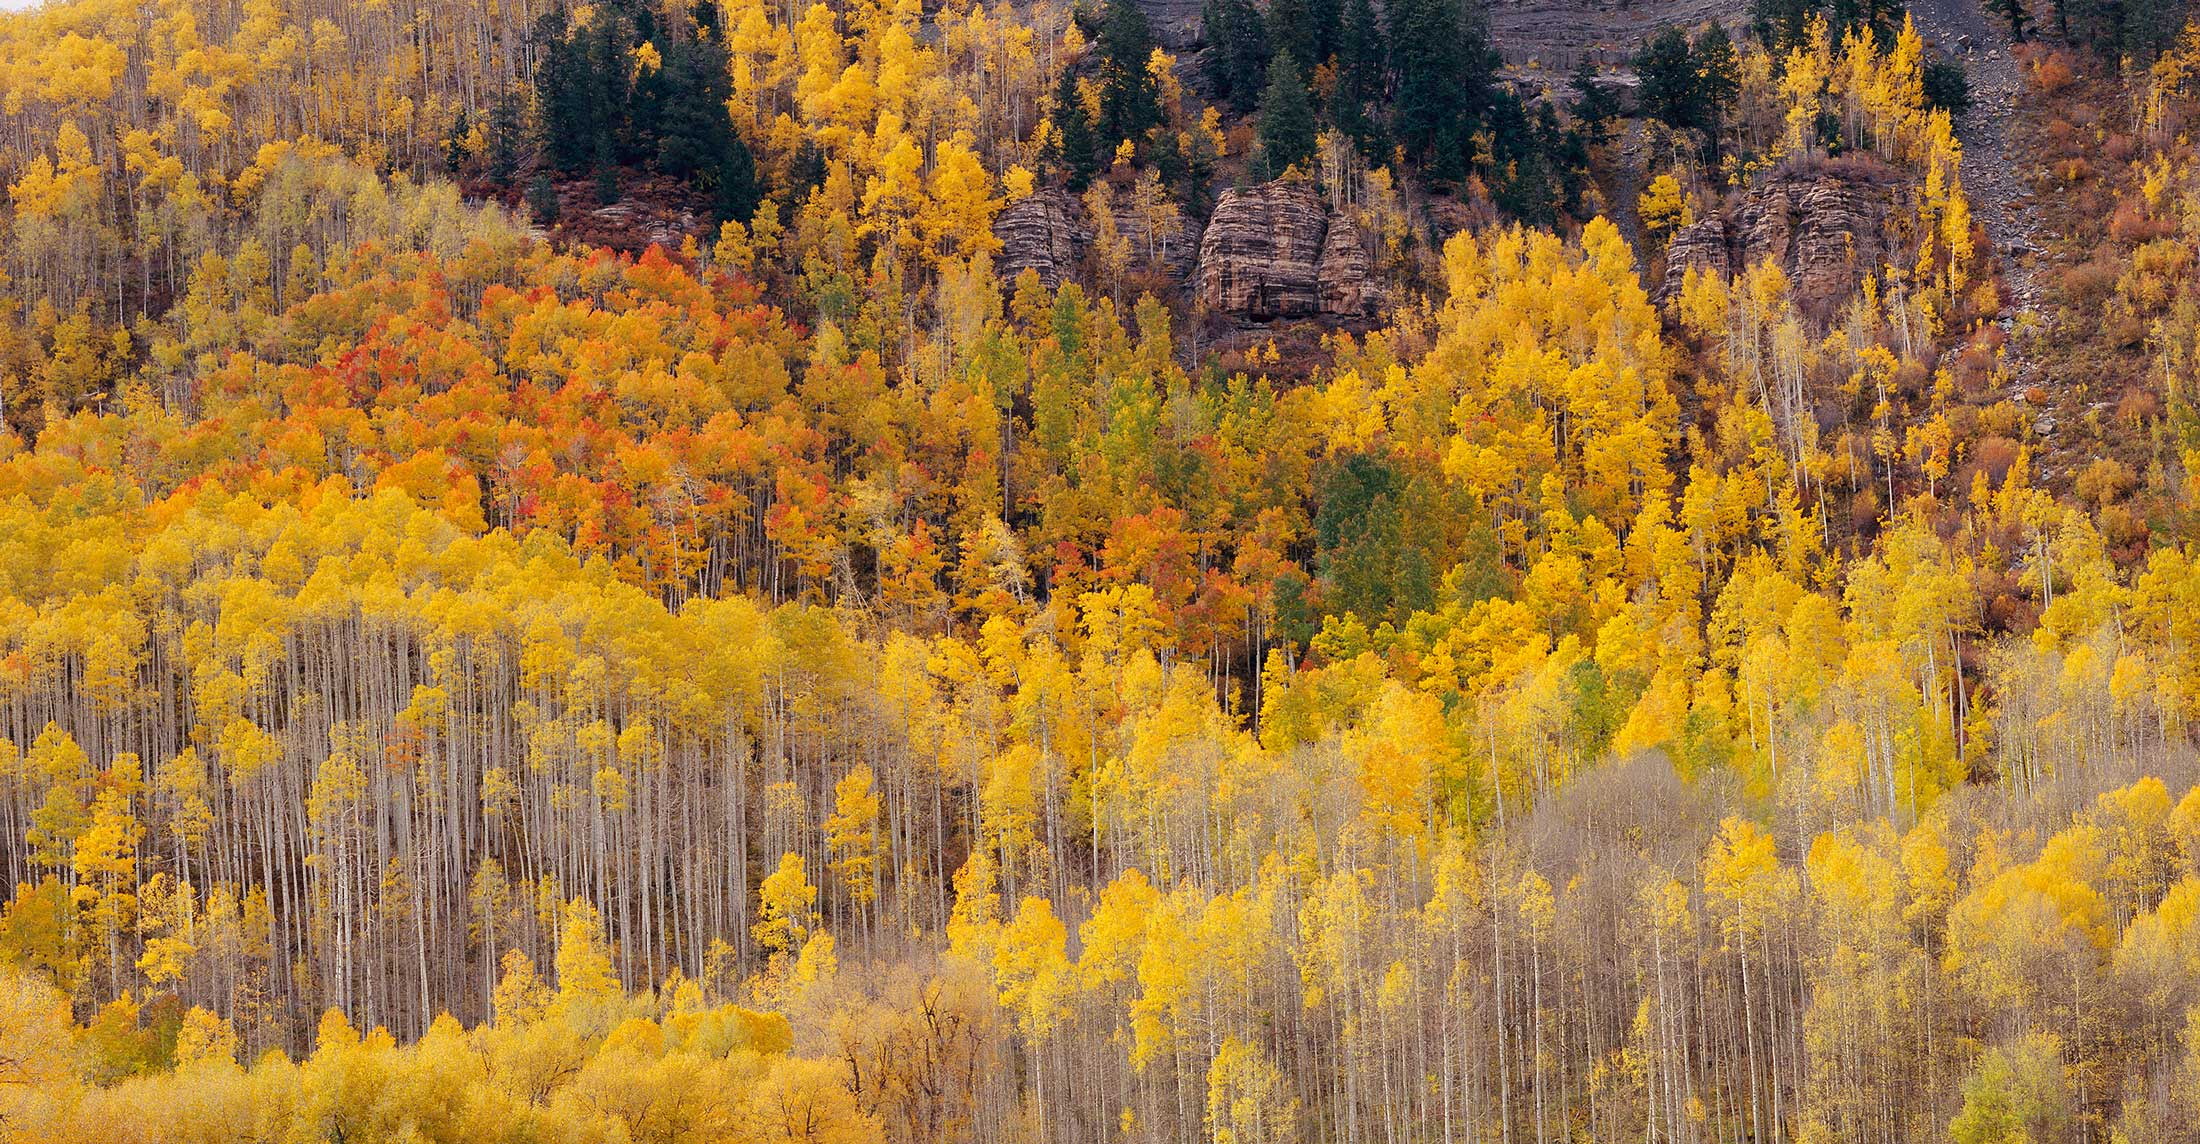 822 Hermosa Cliffs, Autumn, San Juan National Forest, Colorado